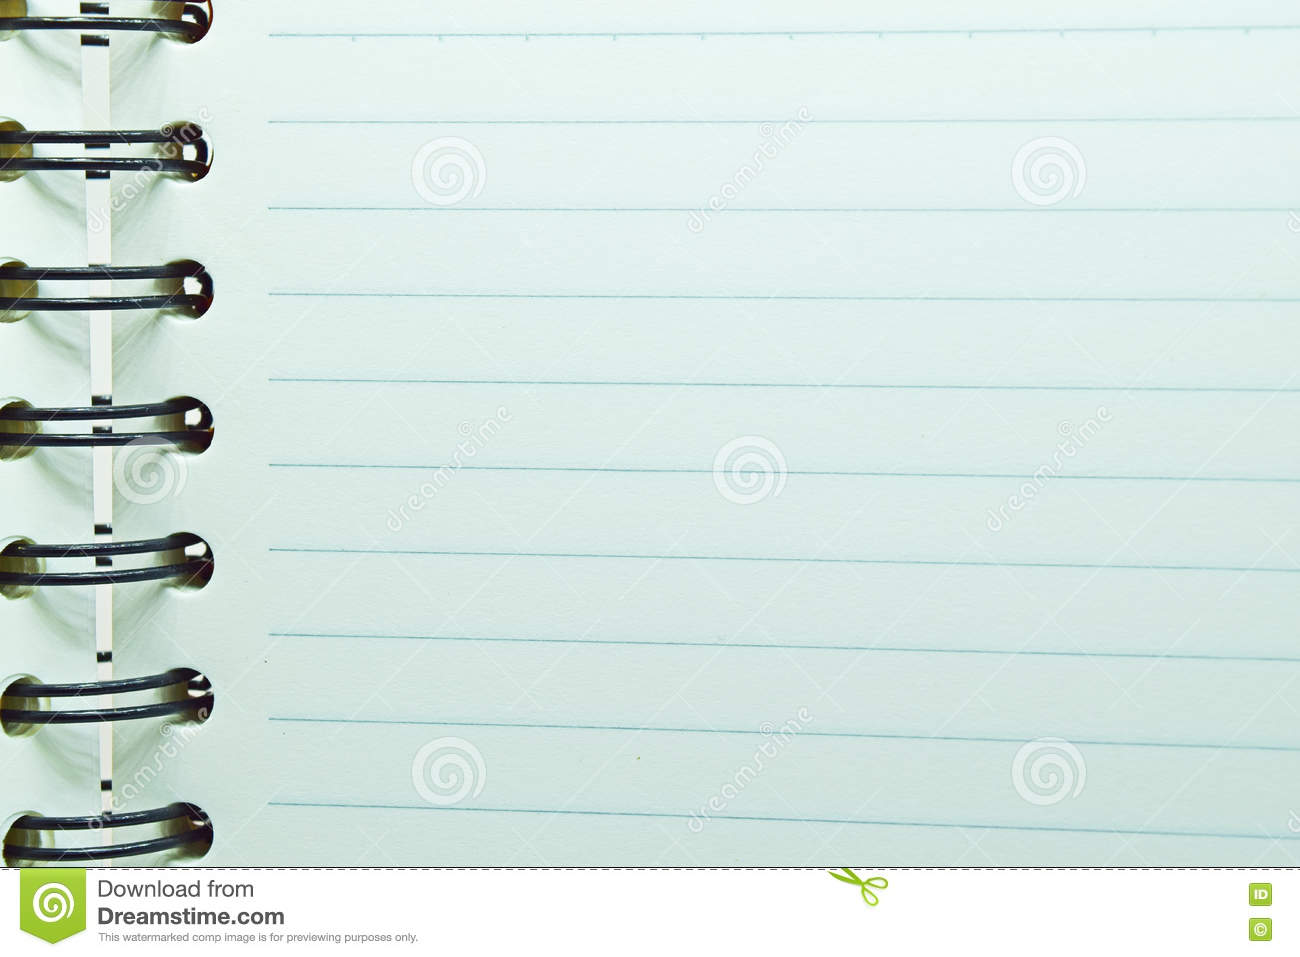 Notebook Lined Paper Photo Image 82217356 – Blank Lined Page